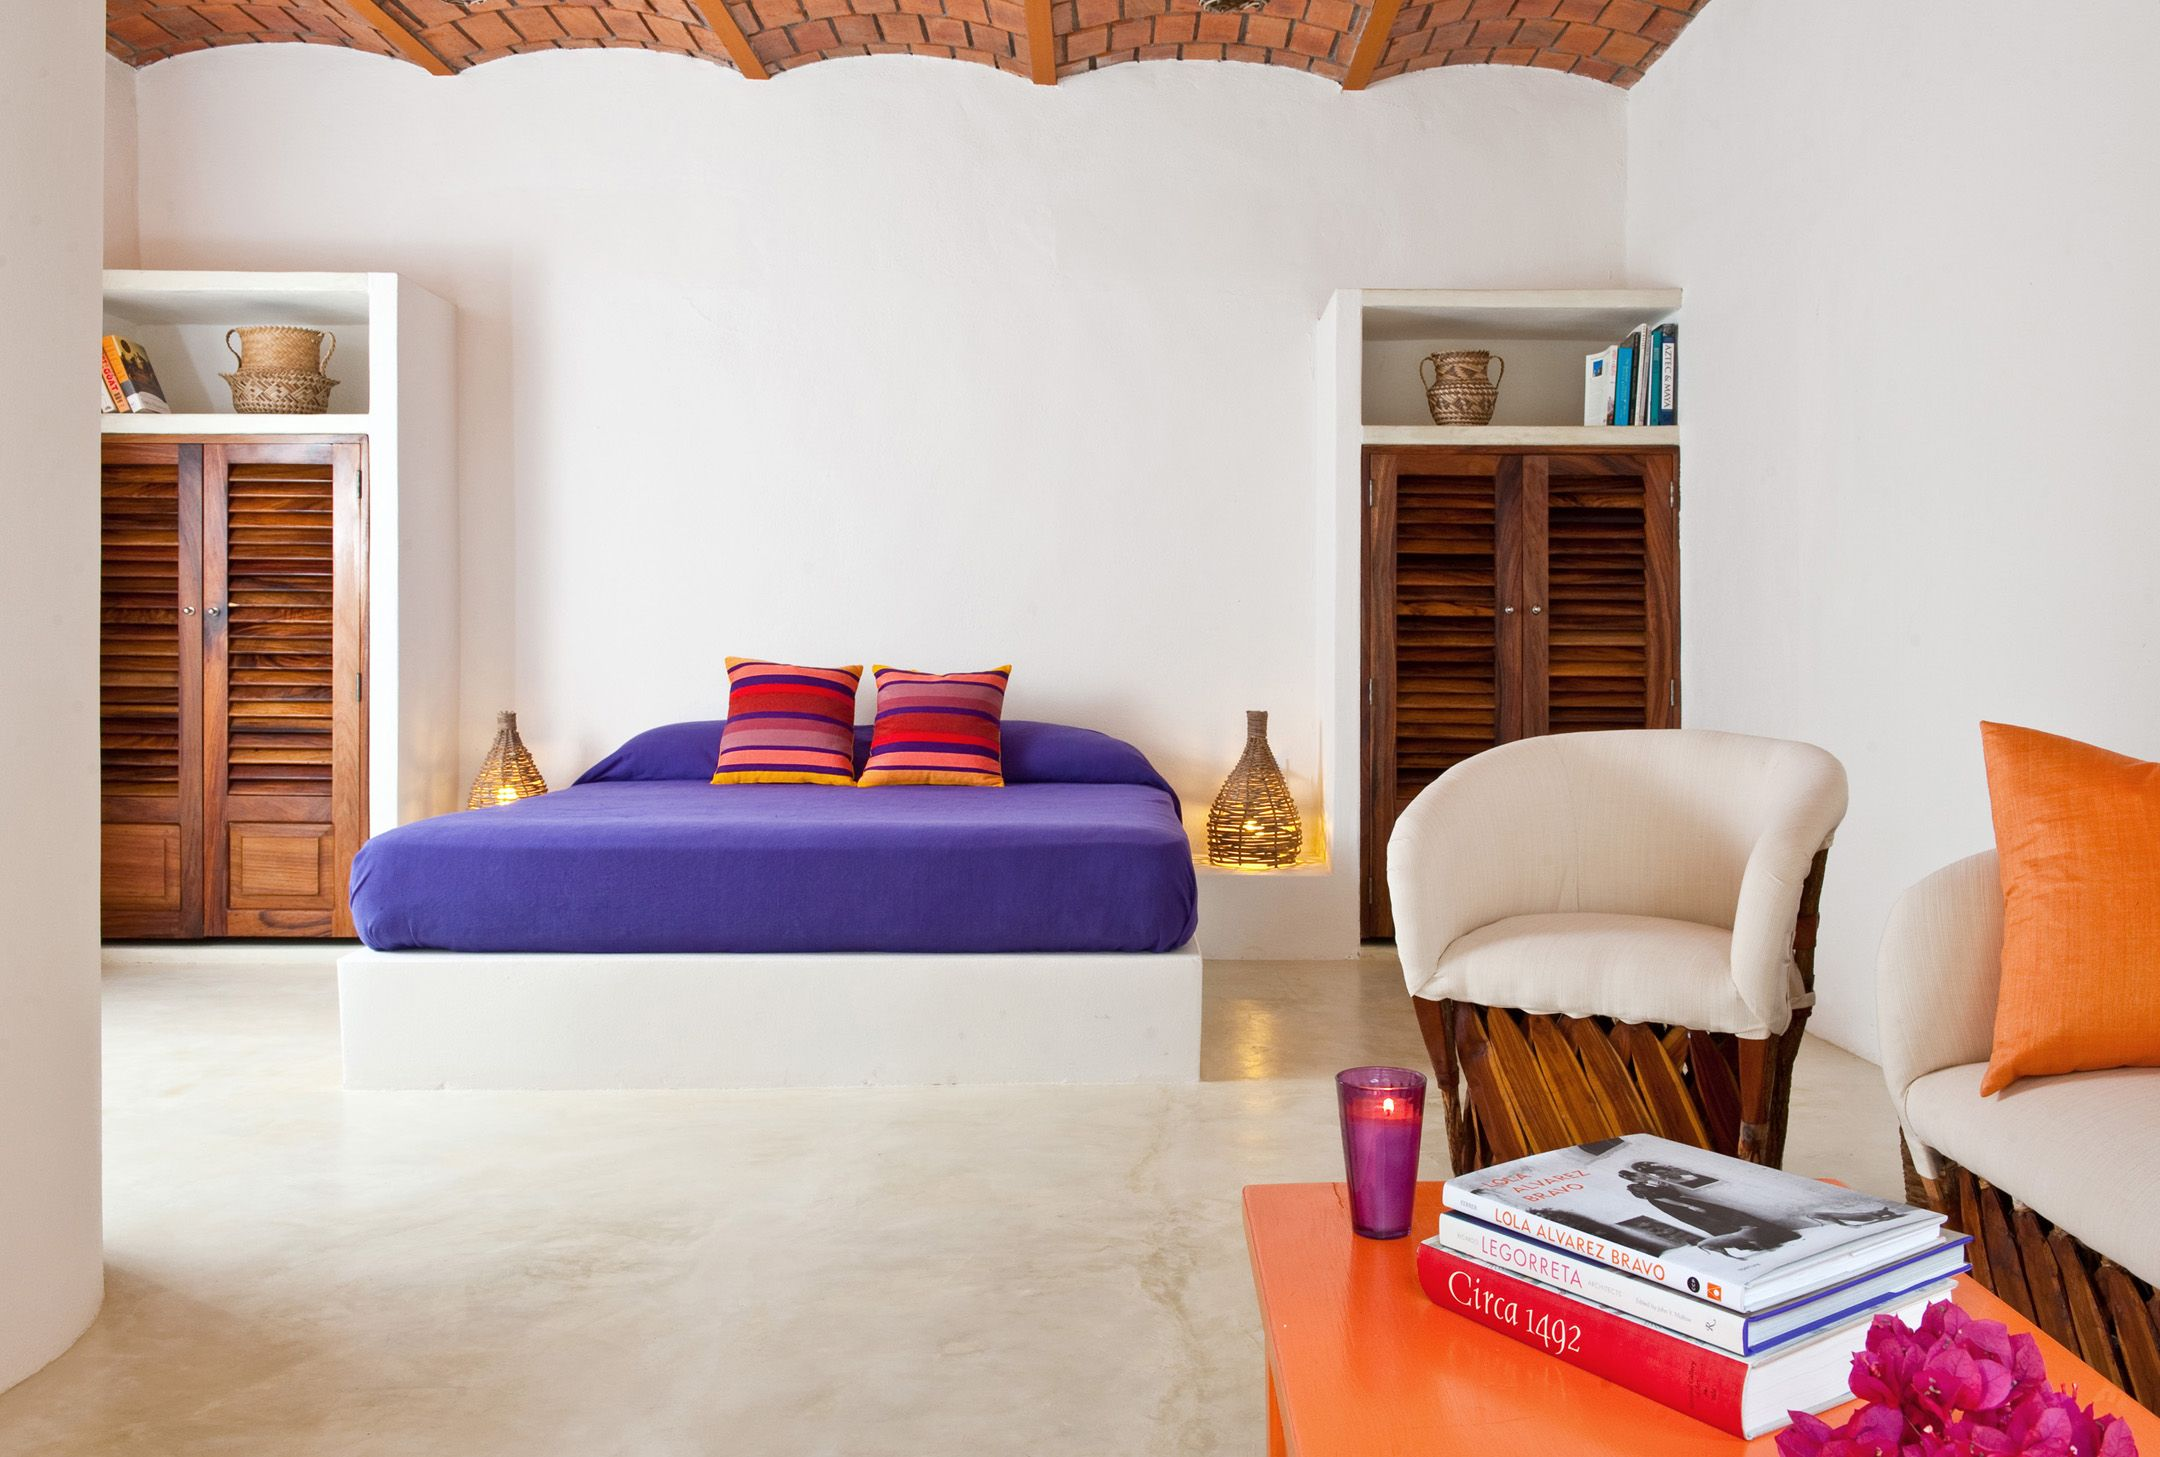 Casa Dos Chicos: Sayulita Mexico | Bedrooms, Future house and Master ...